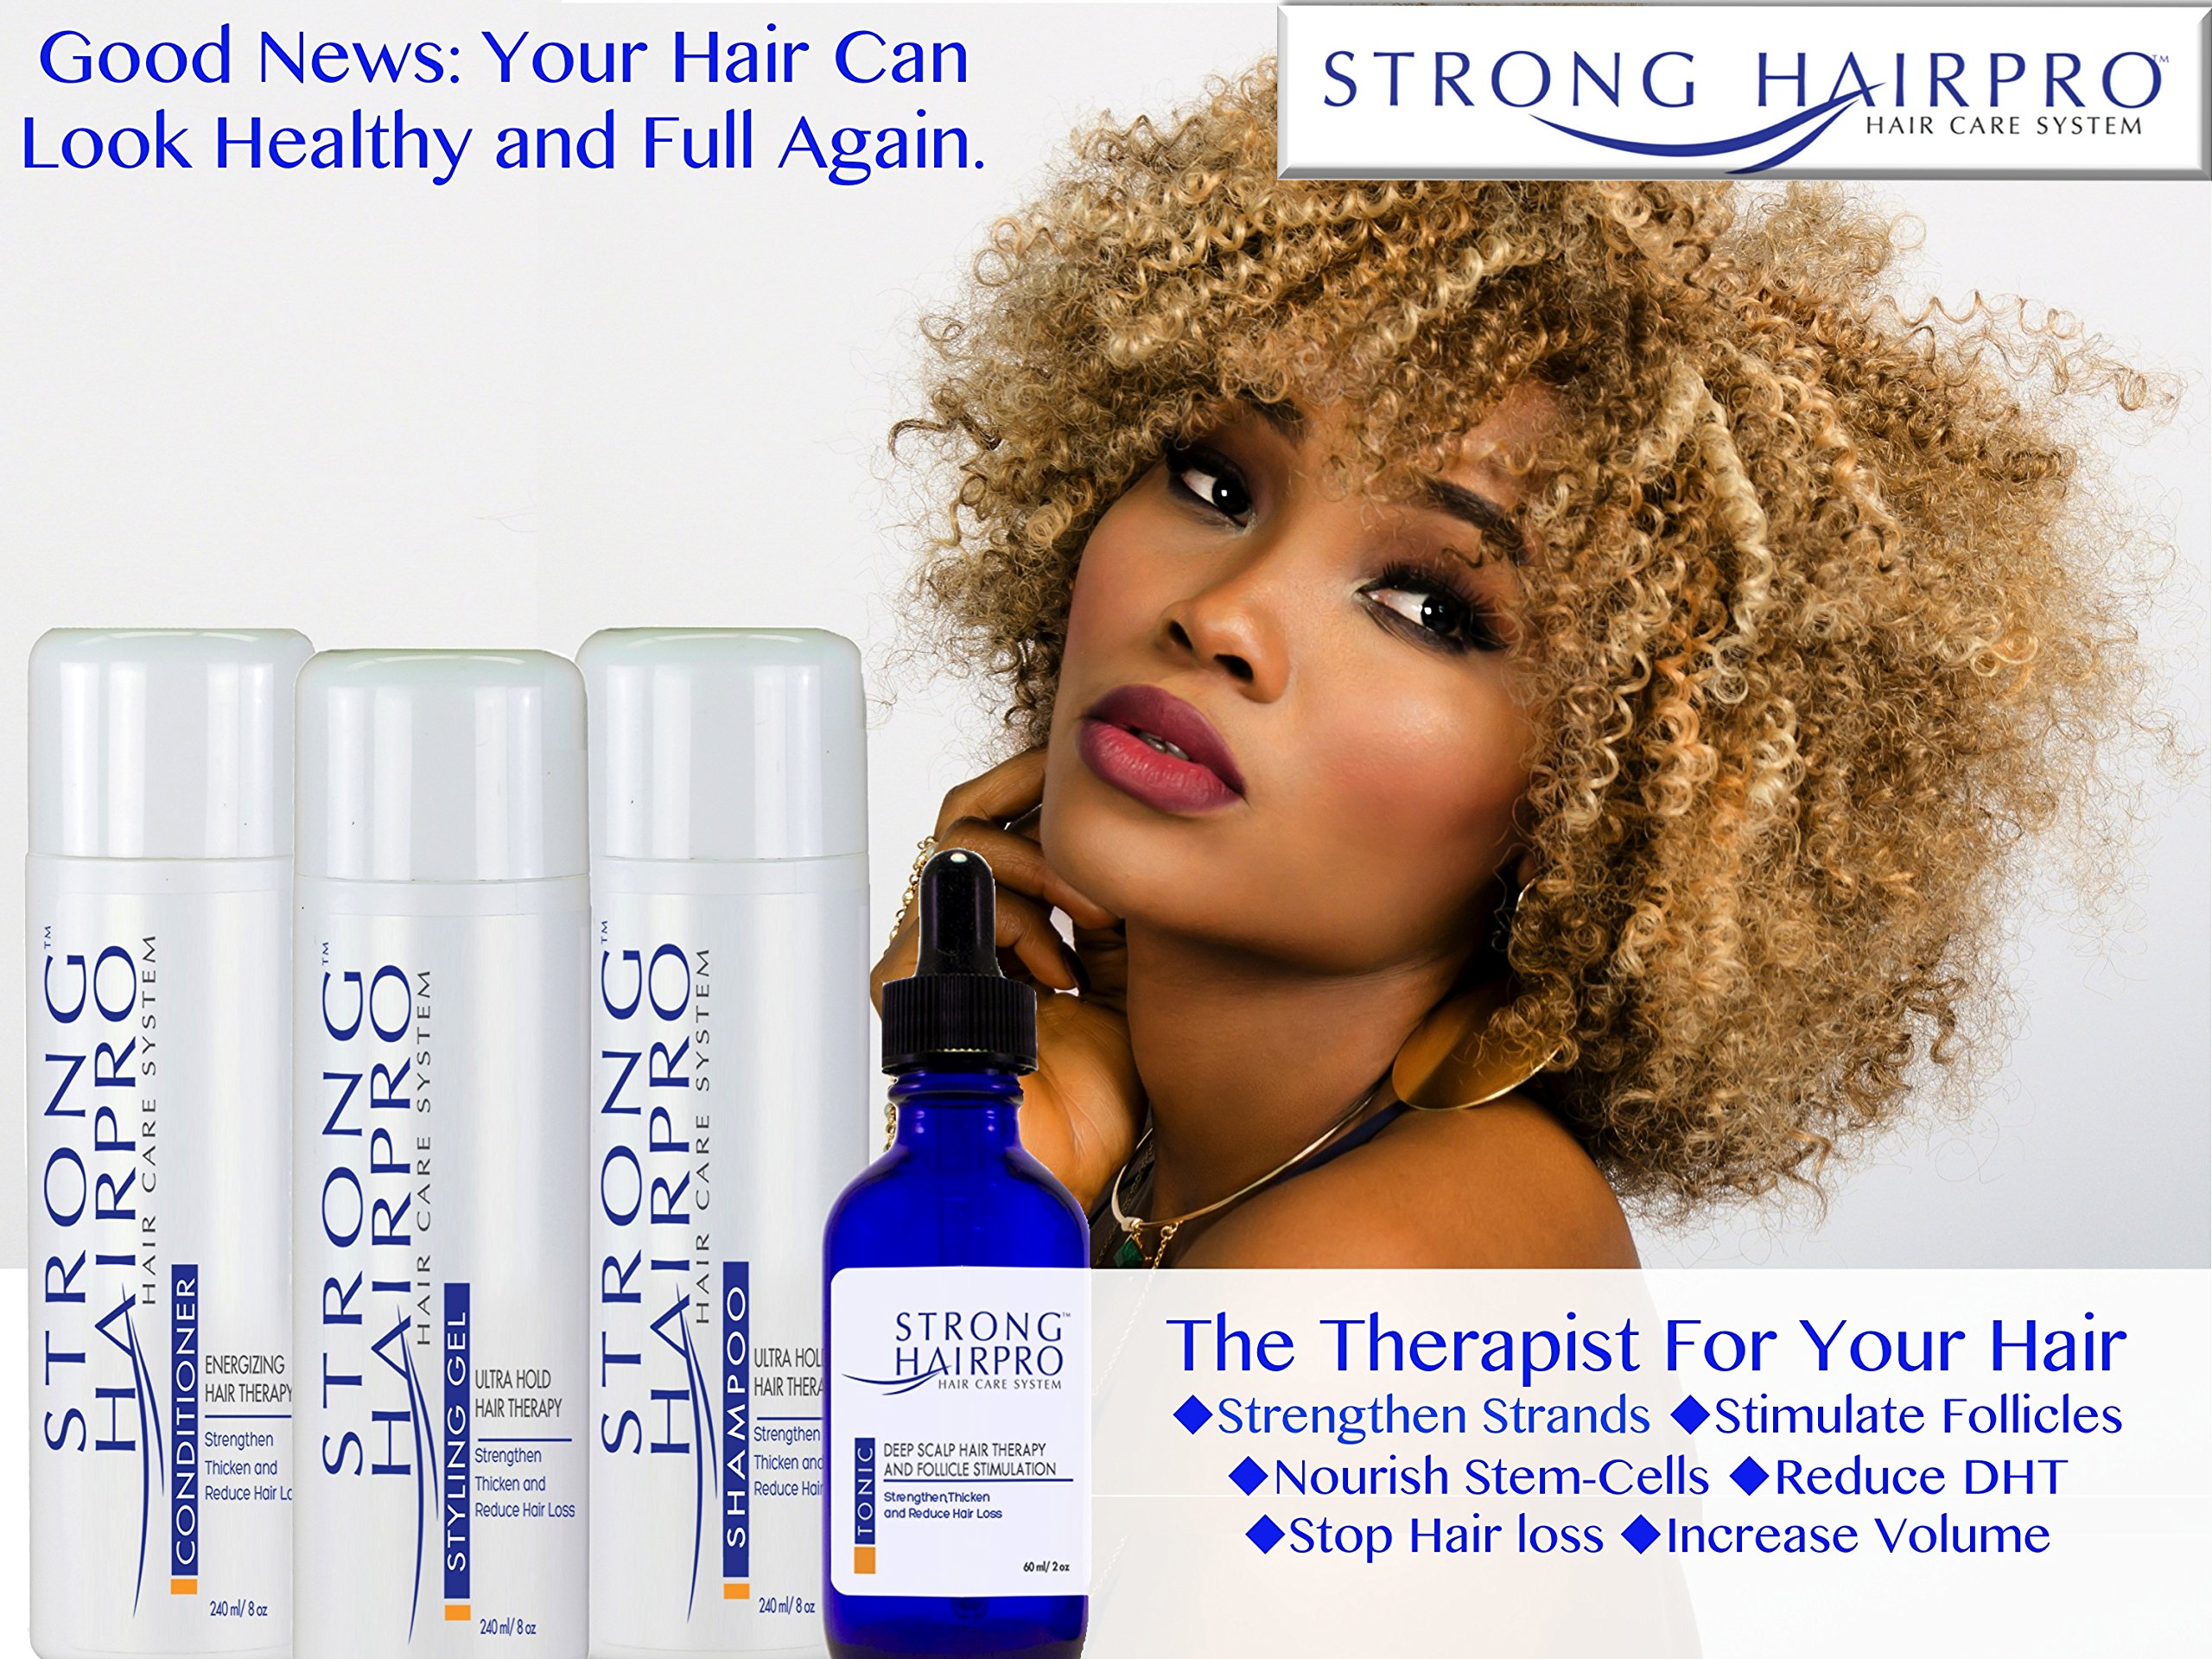 Strong HairPro New Hair Strengthening and Growth Stimulating Peptide Shampoo for Hair Loss Prevention with Caffeine, 8 Fluid Ounce by Strong HairPro (Image #9)